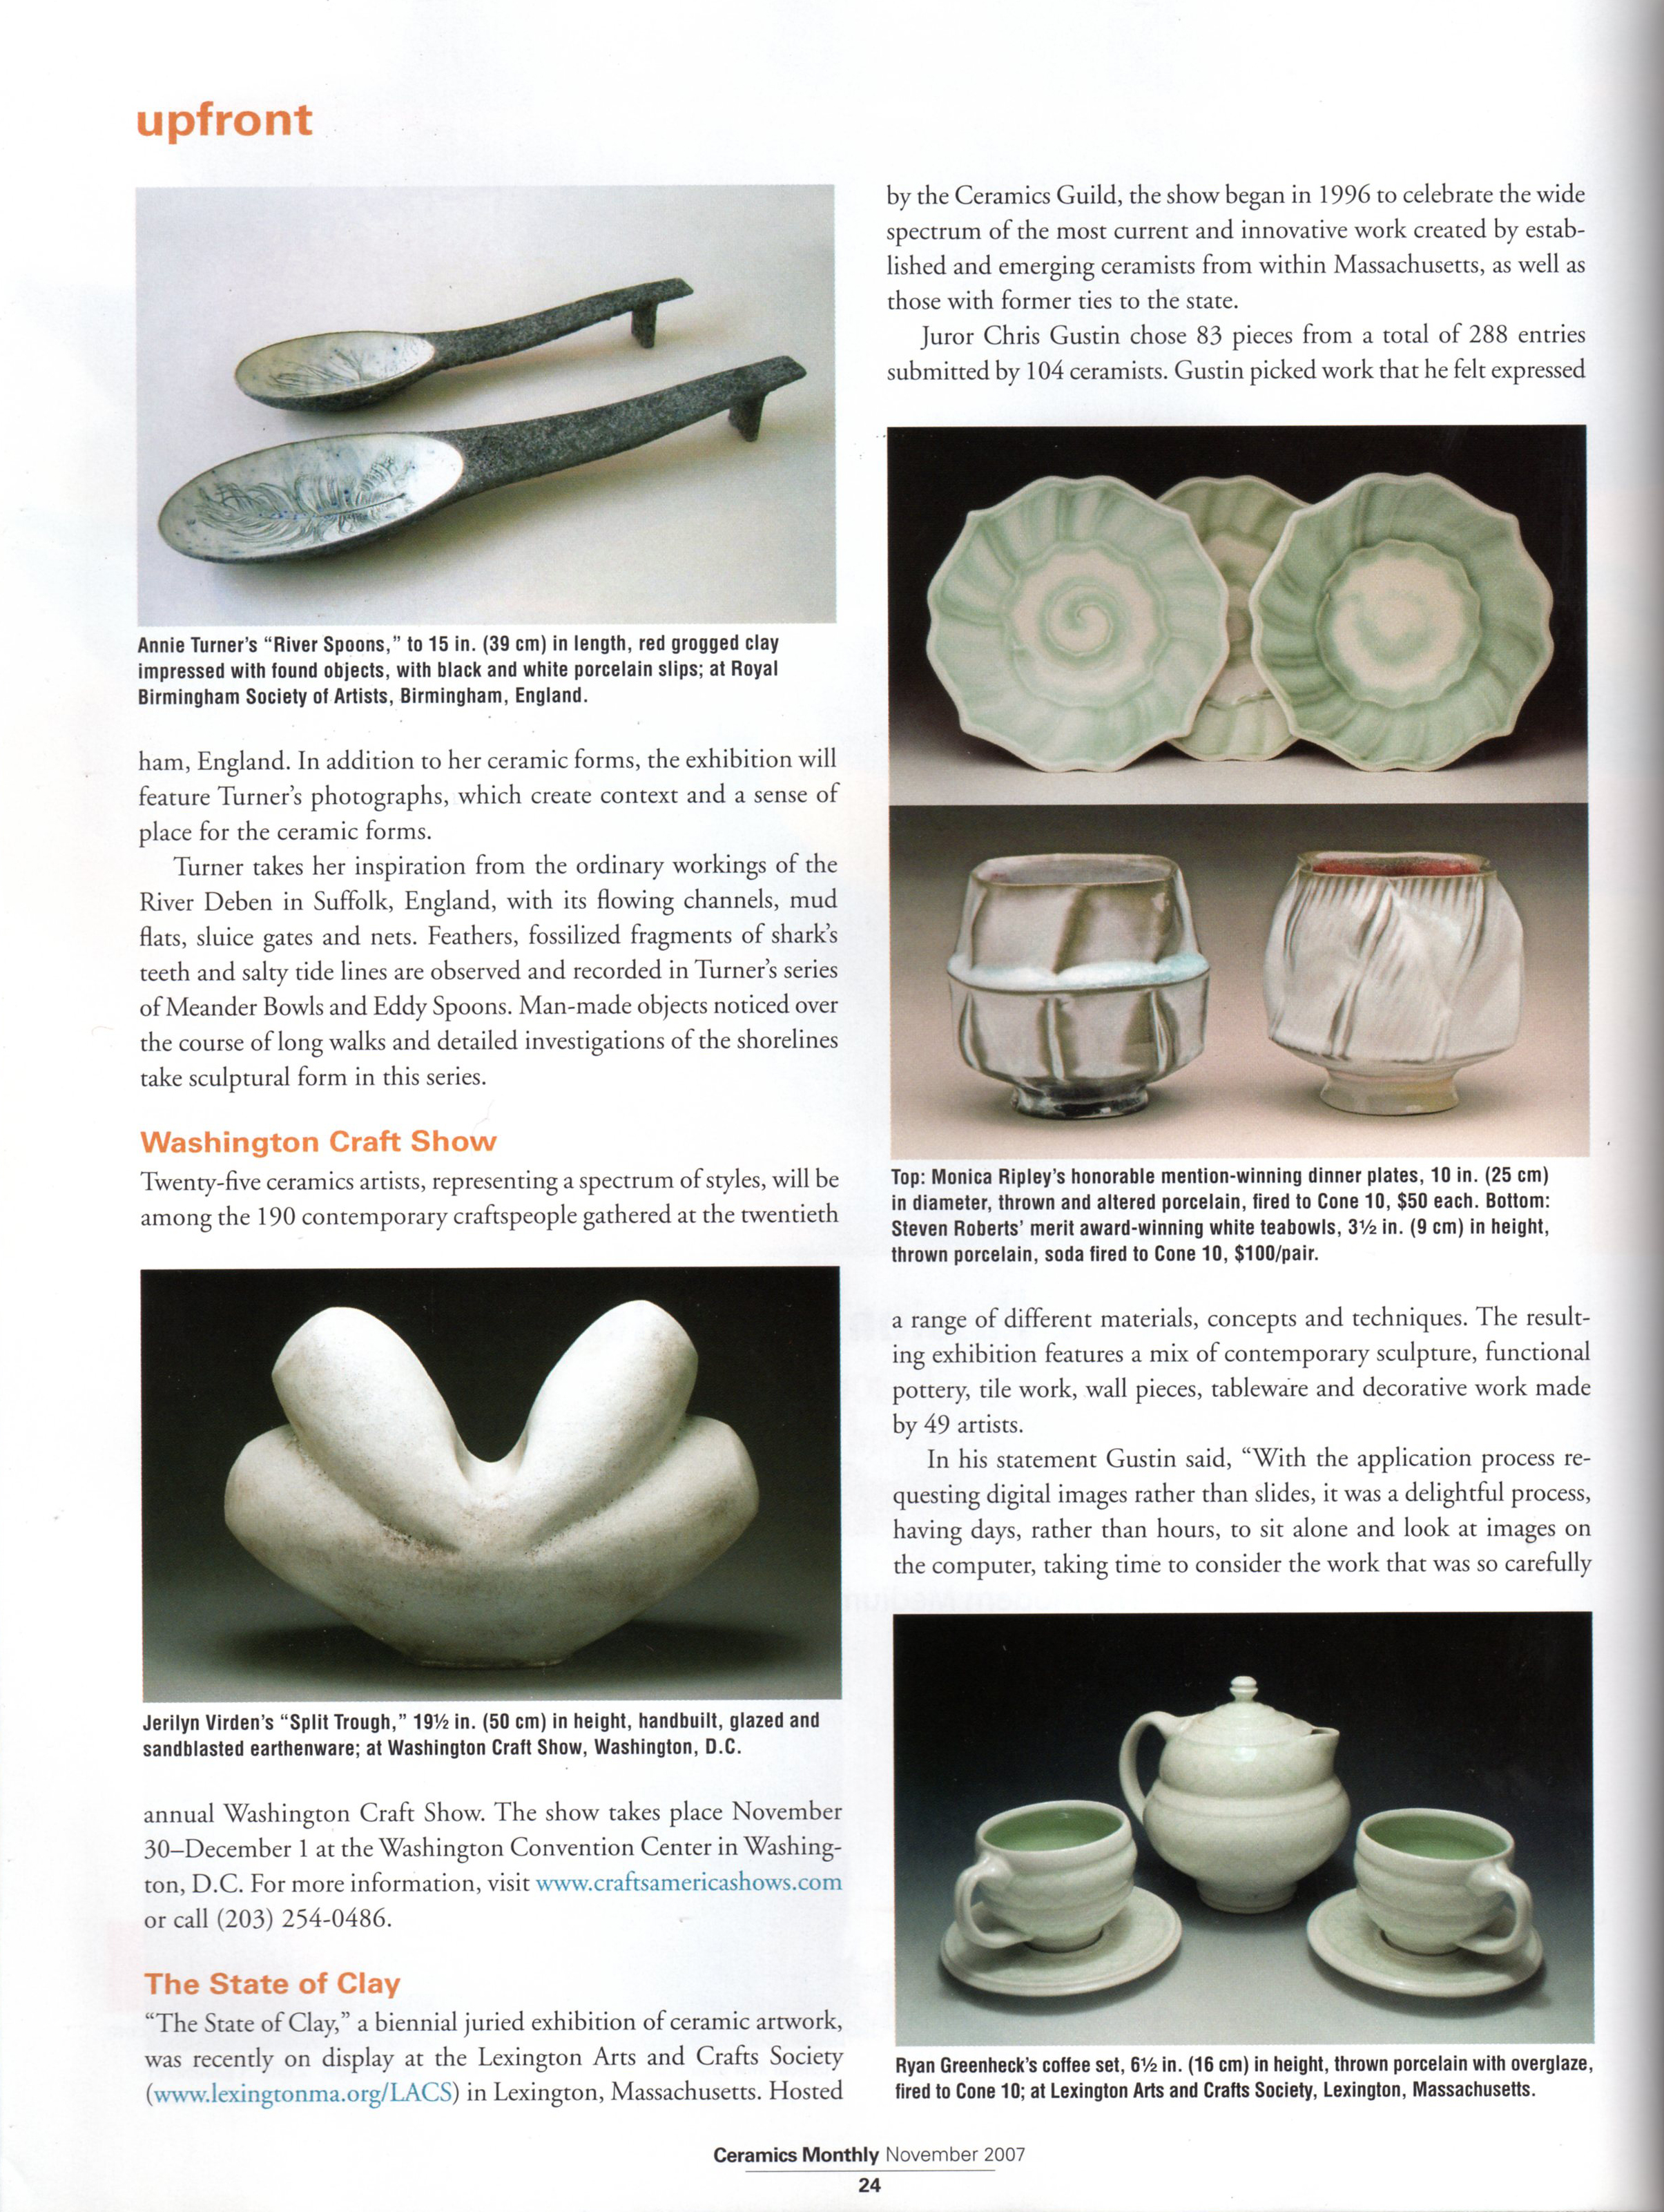 "Ceramics Monthly, November 2007, ""Up Front"" section, page 24."